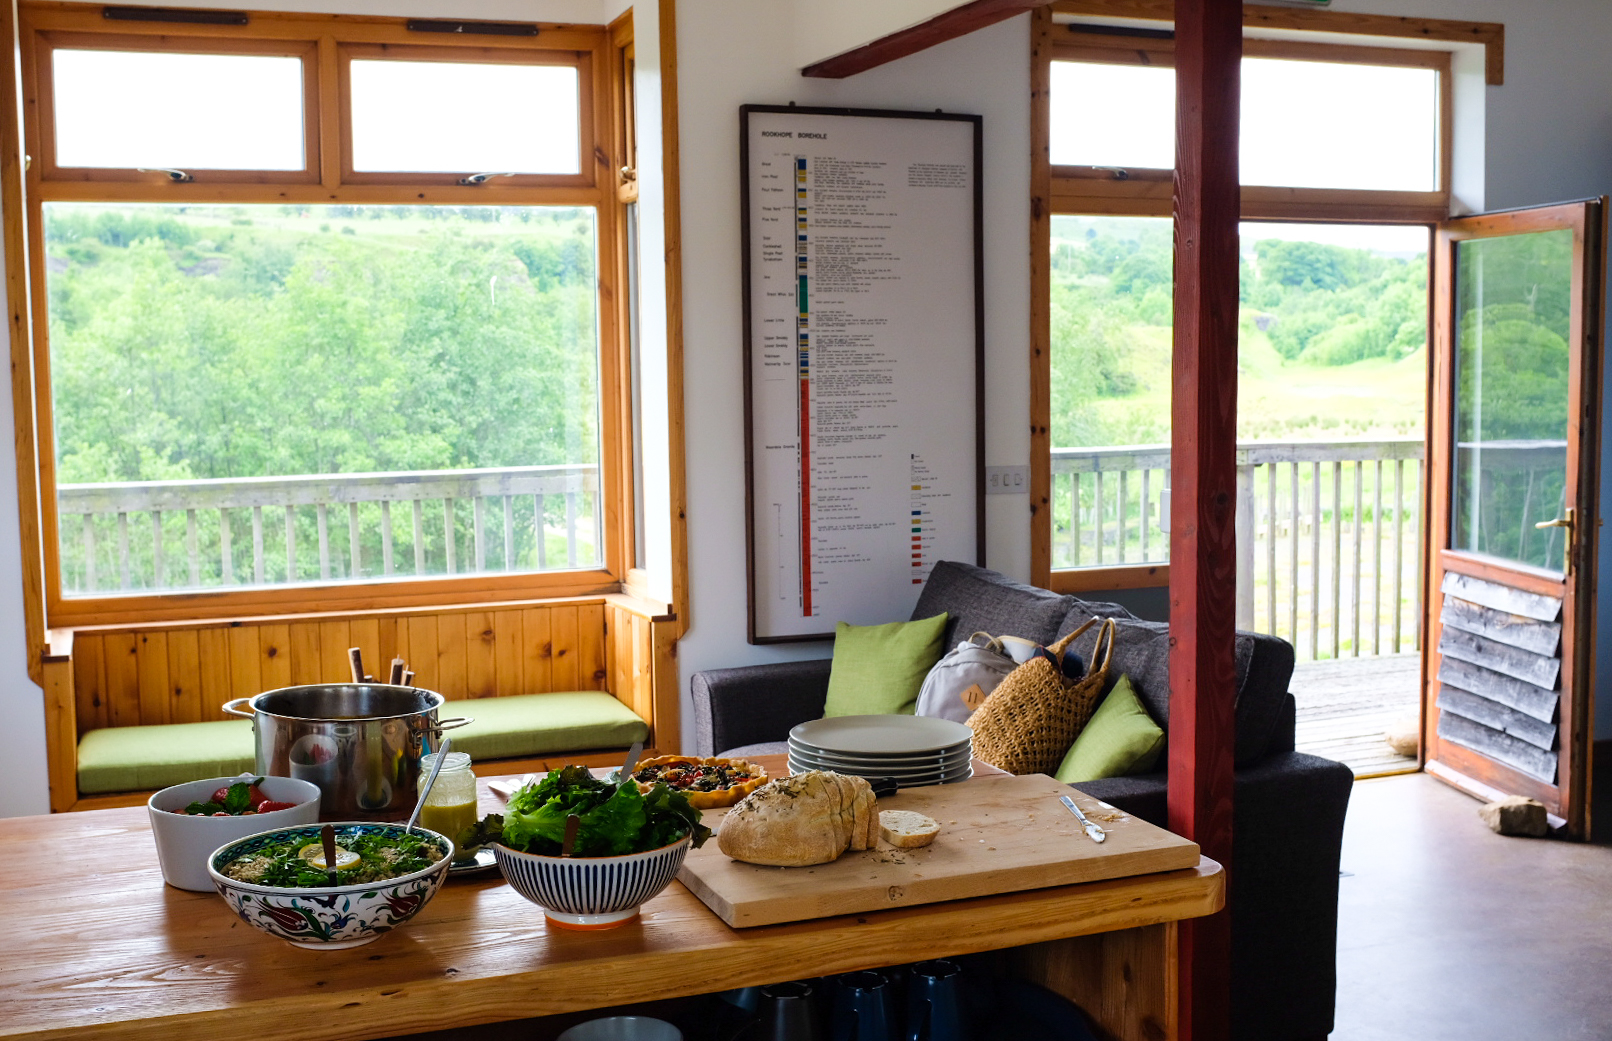 All ready for lunch with a view over the quarry and surrounding countryside.